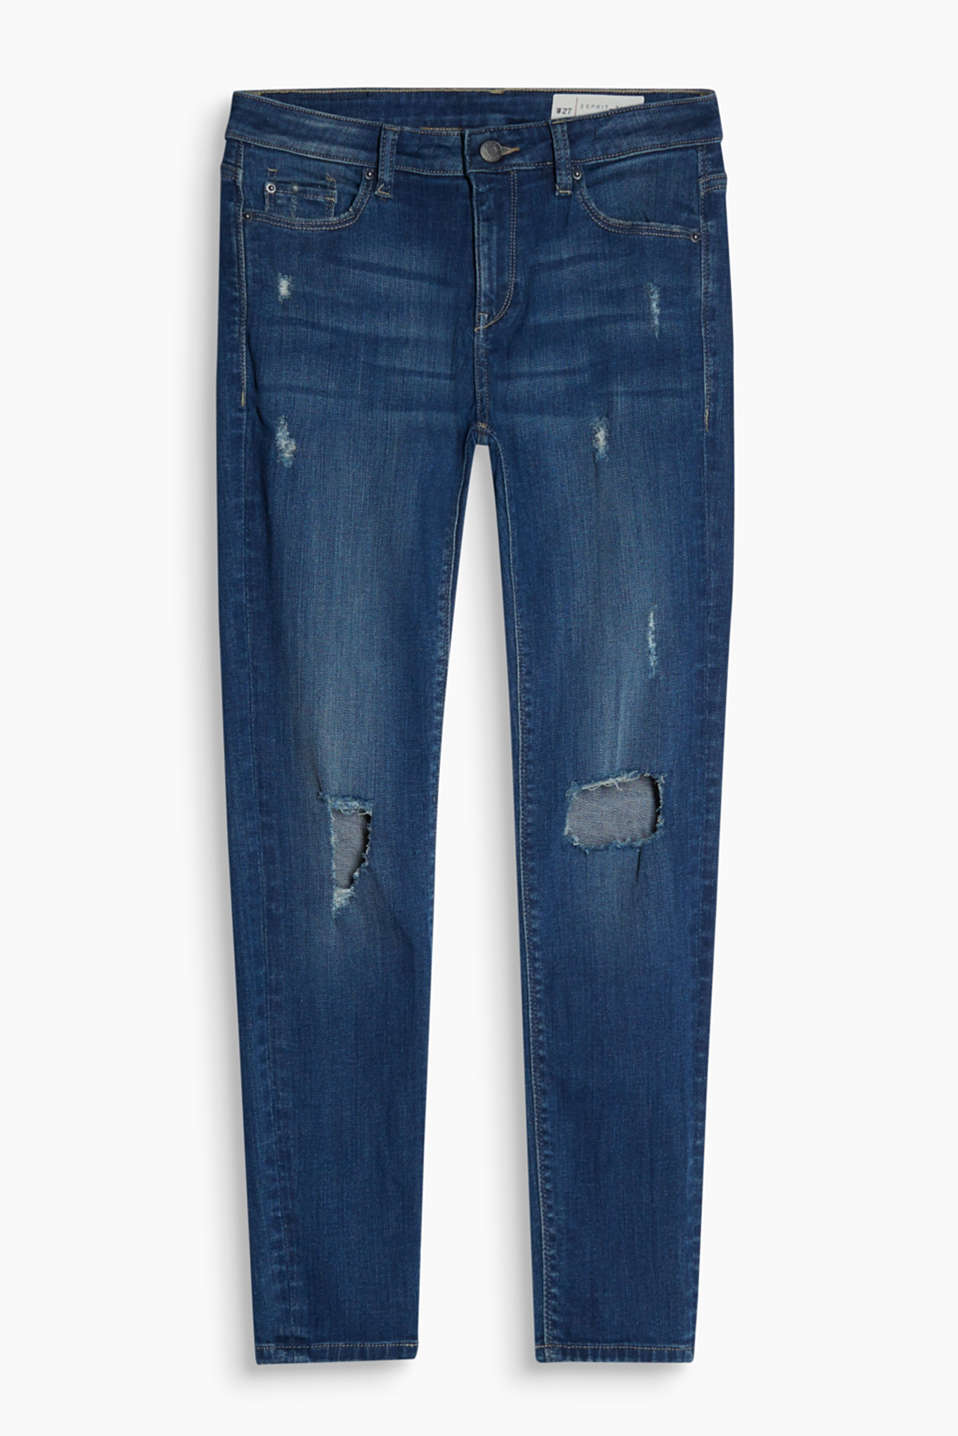 Lightweight stretch jeans in a distressed look with strong vintage details